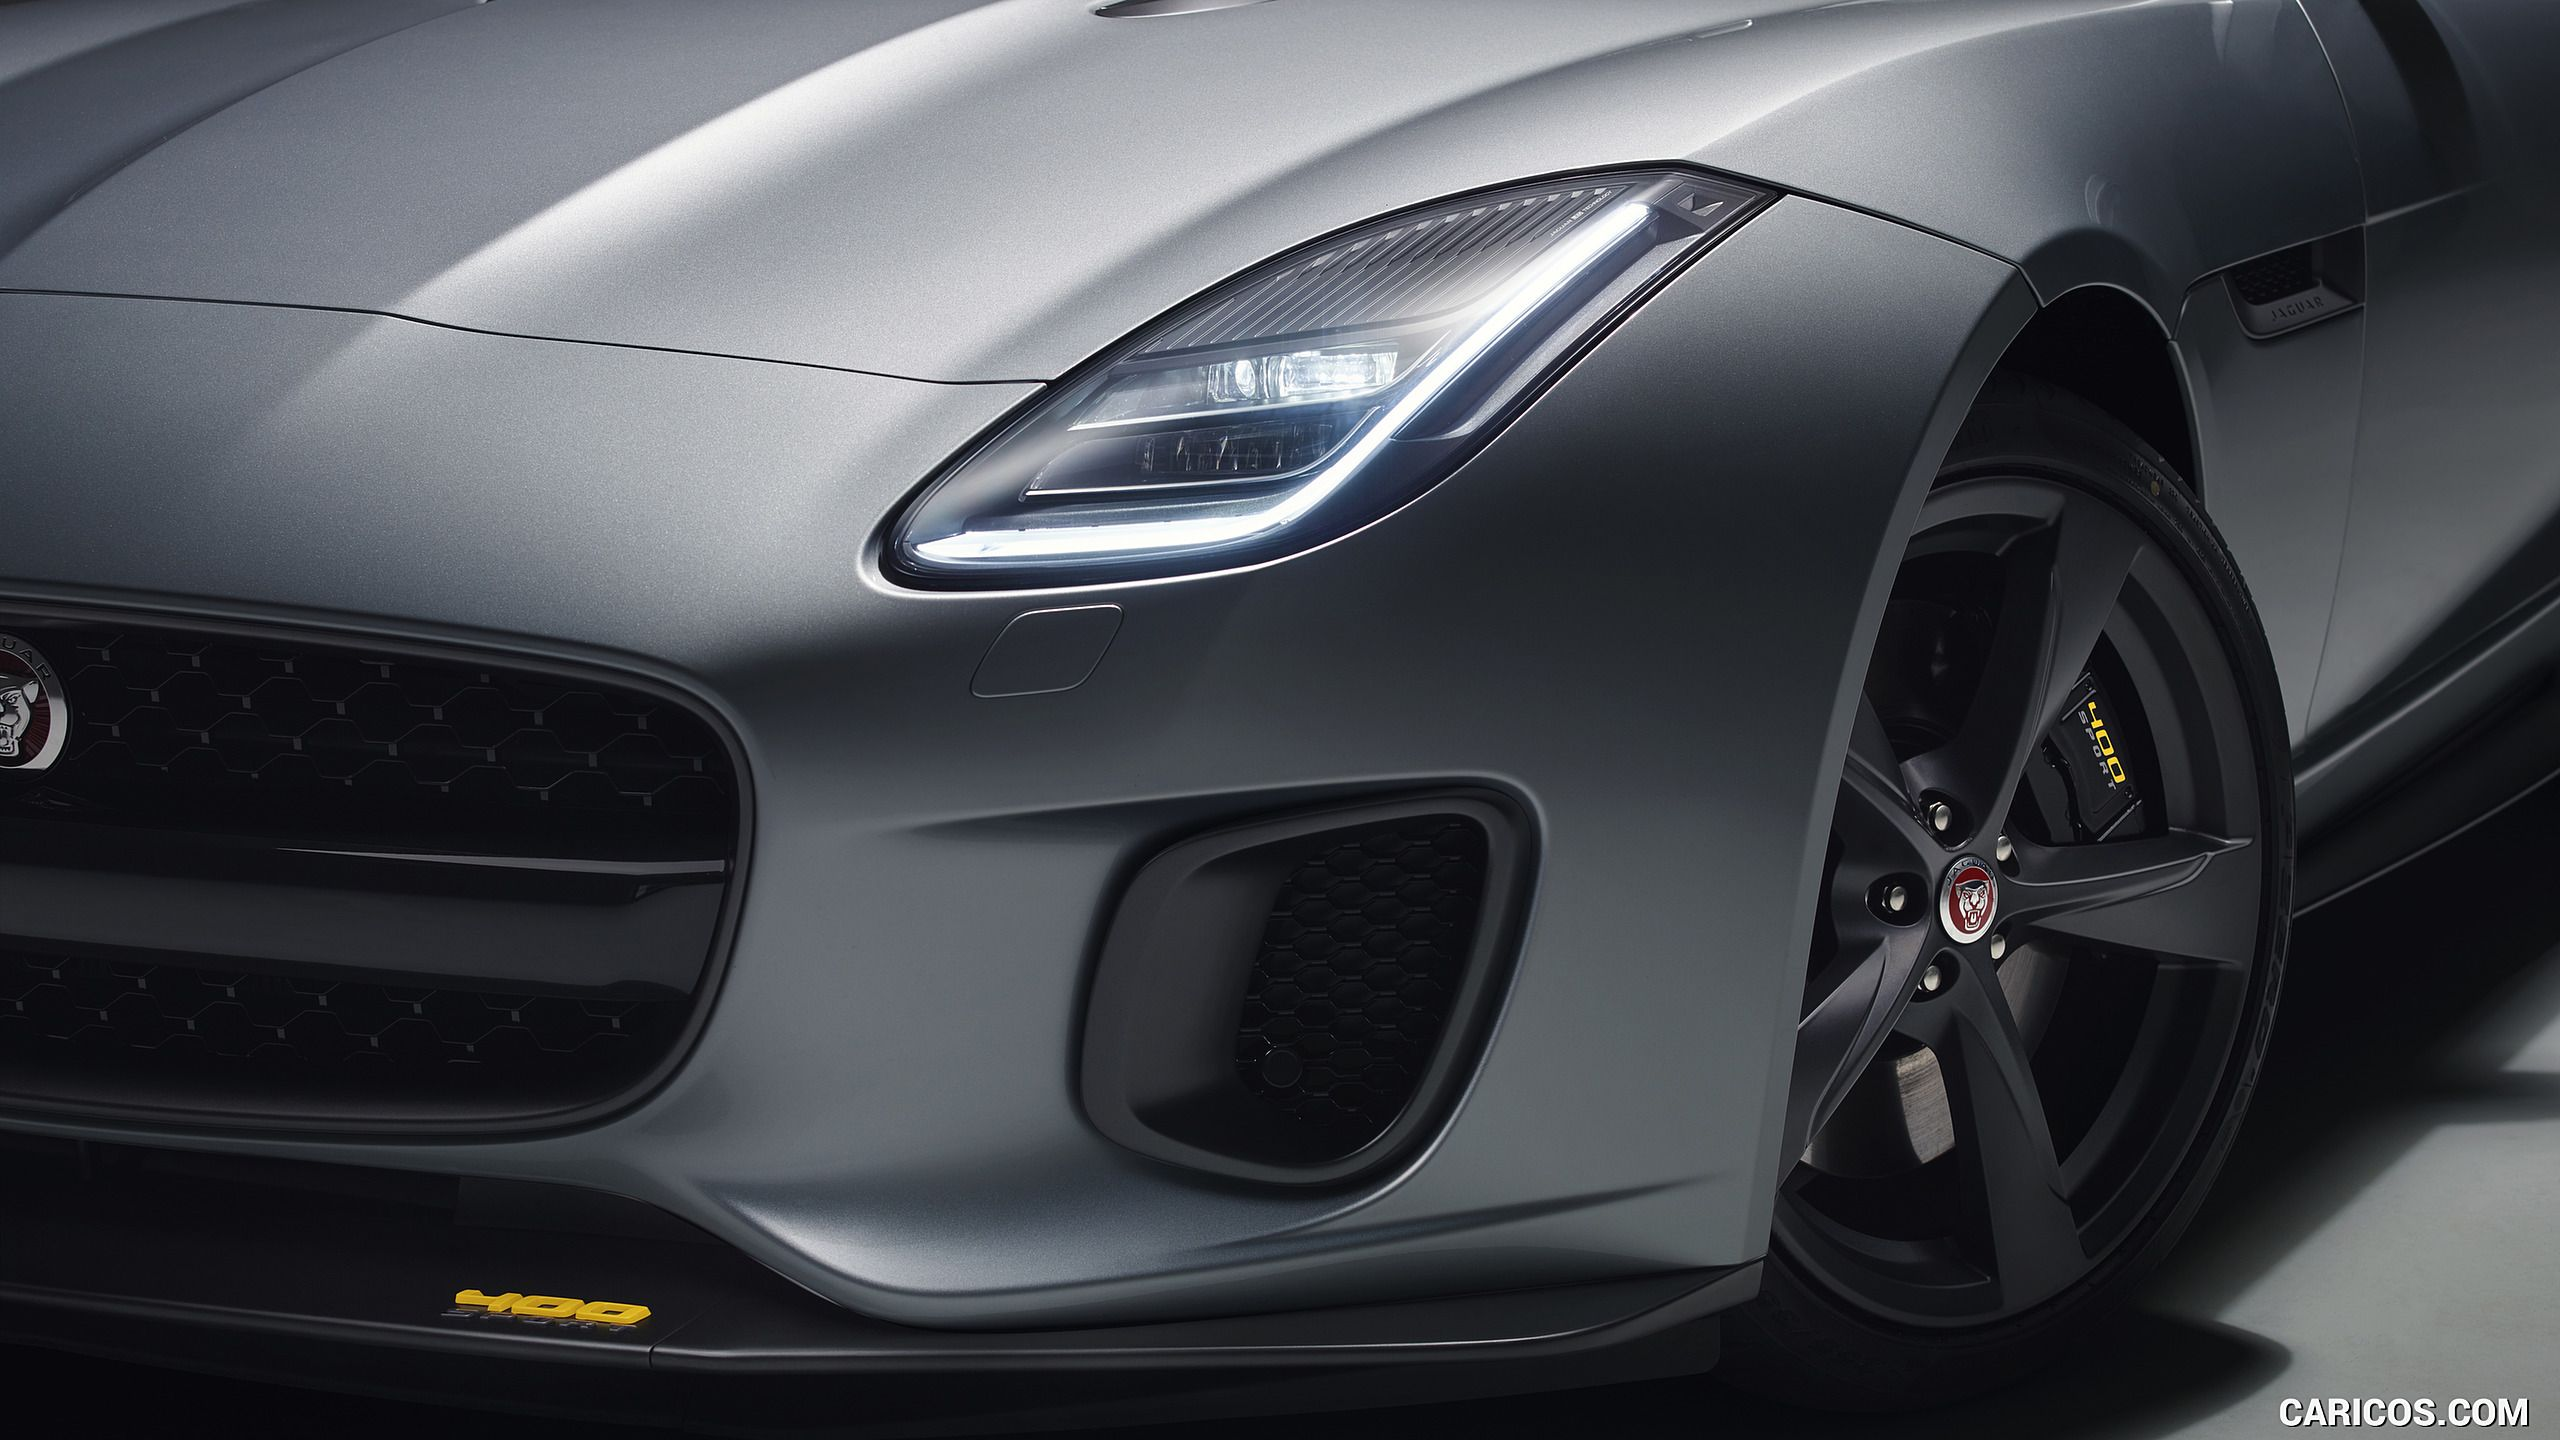 The jaguar f type 400 sport reveals the performance car s first refresh